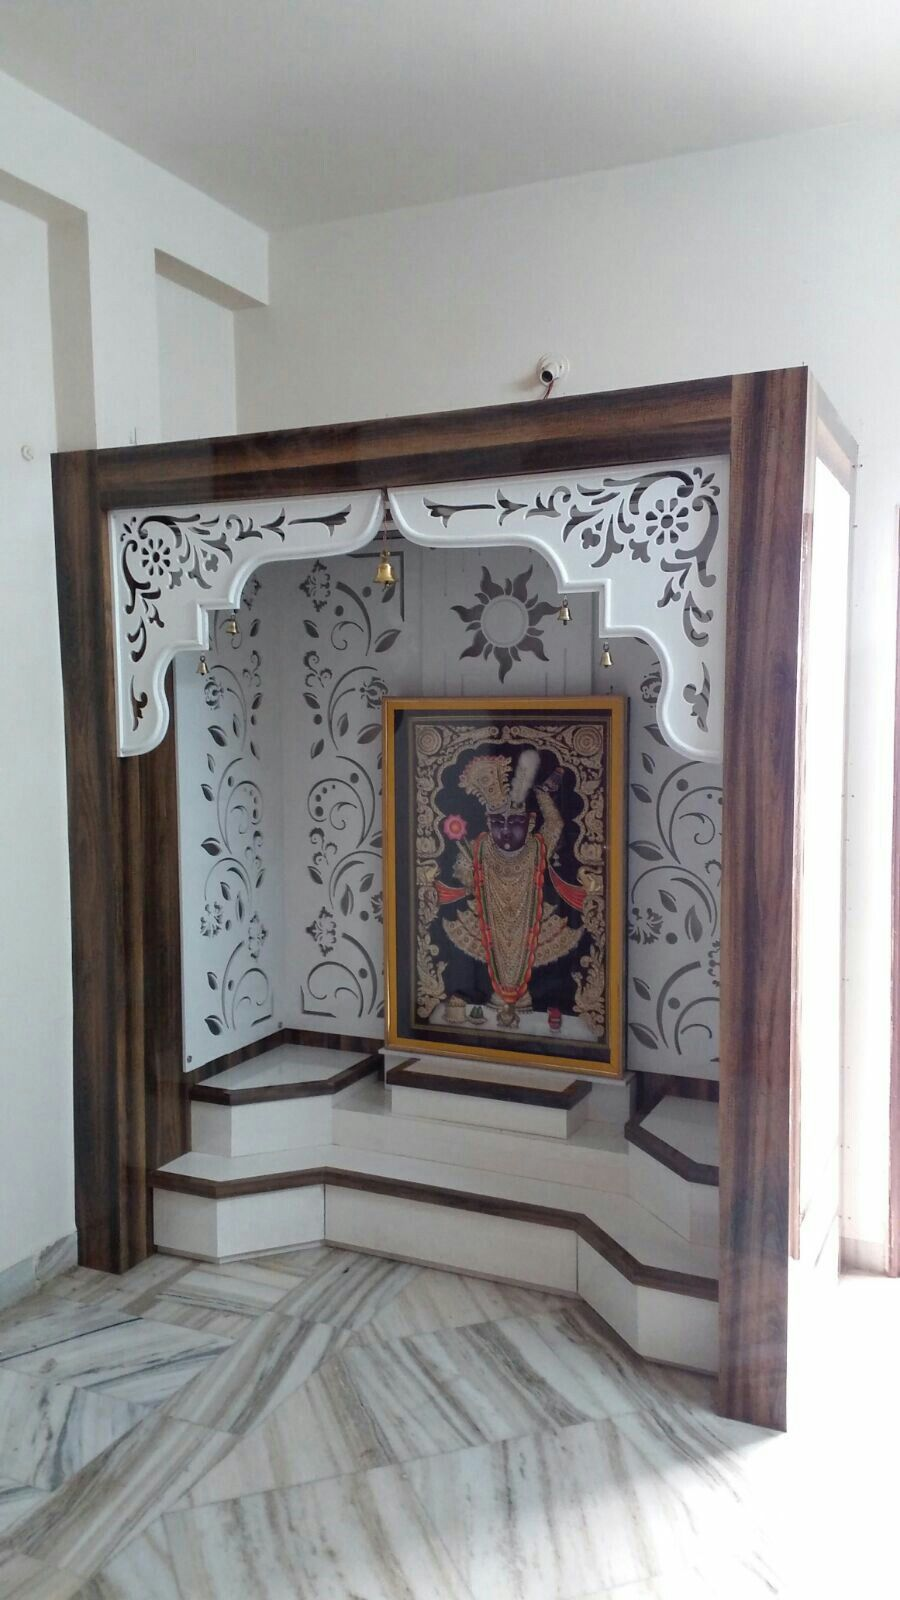 Mdf cutting arch and walls mandir design pooja room temple also karan jangid home art in pinterest rh